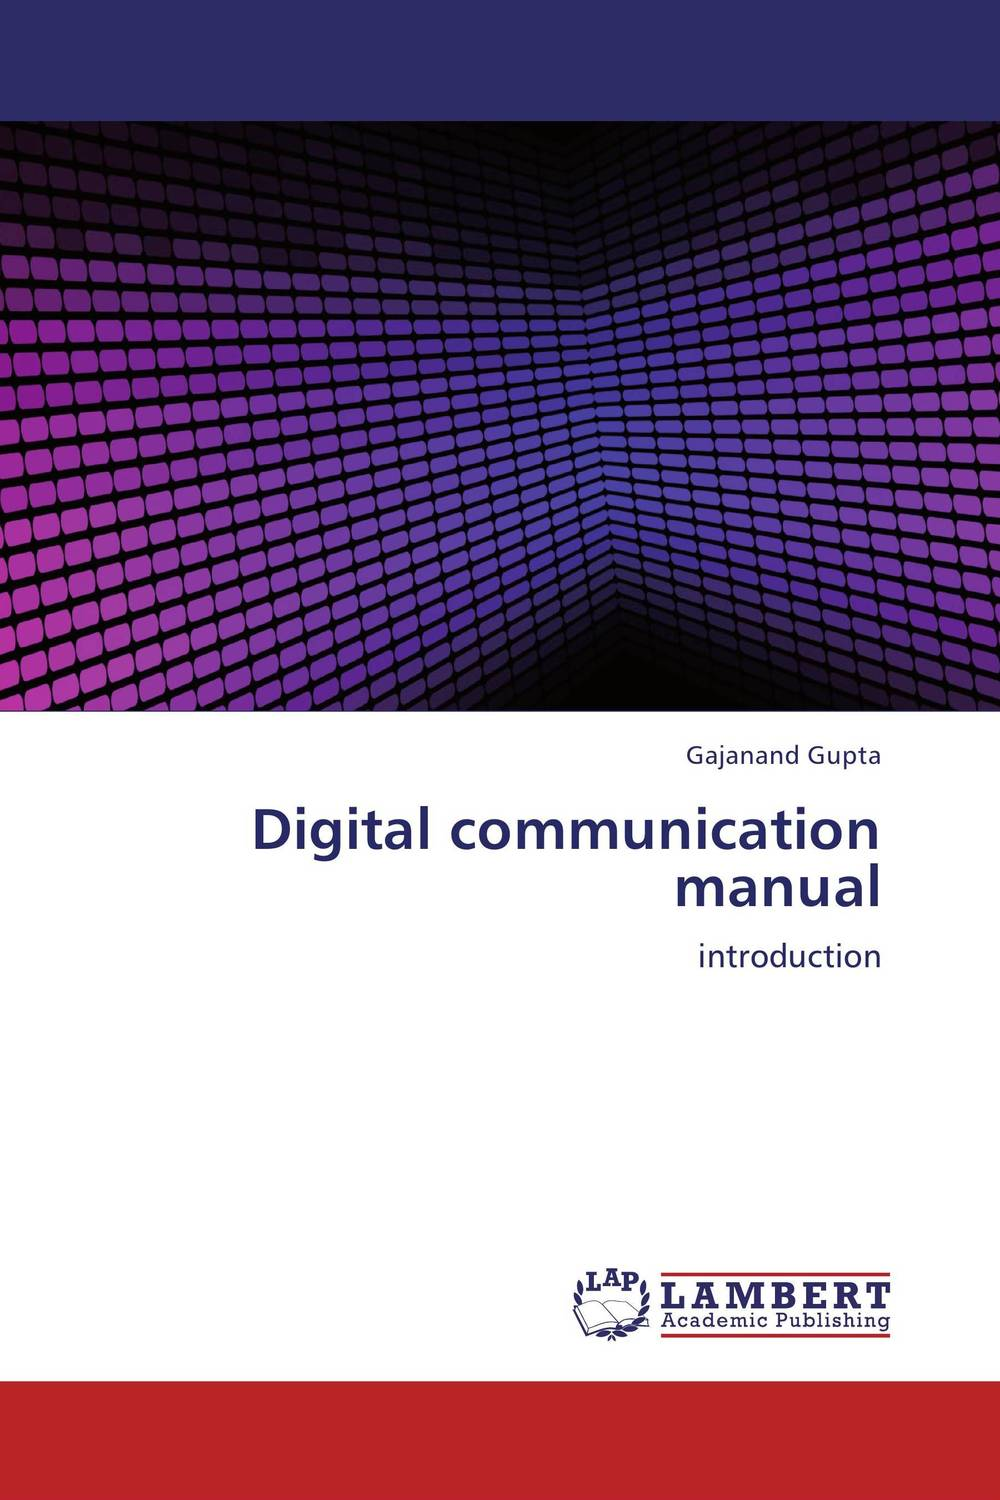 Digital communication manual adriatica часы adriatica 3156 r113q коллекция twin